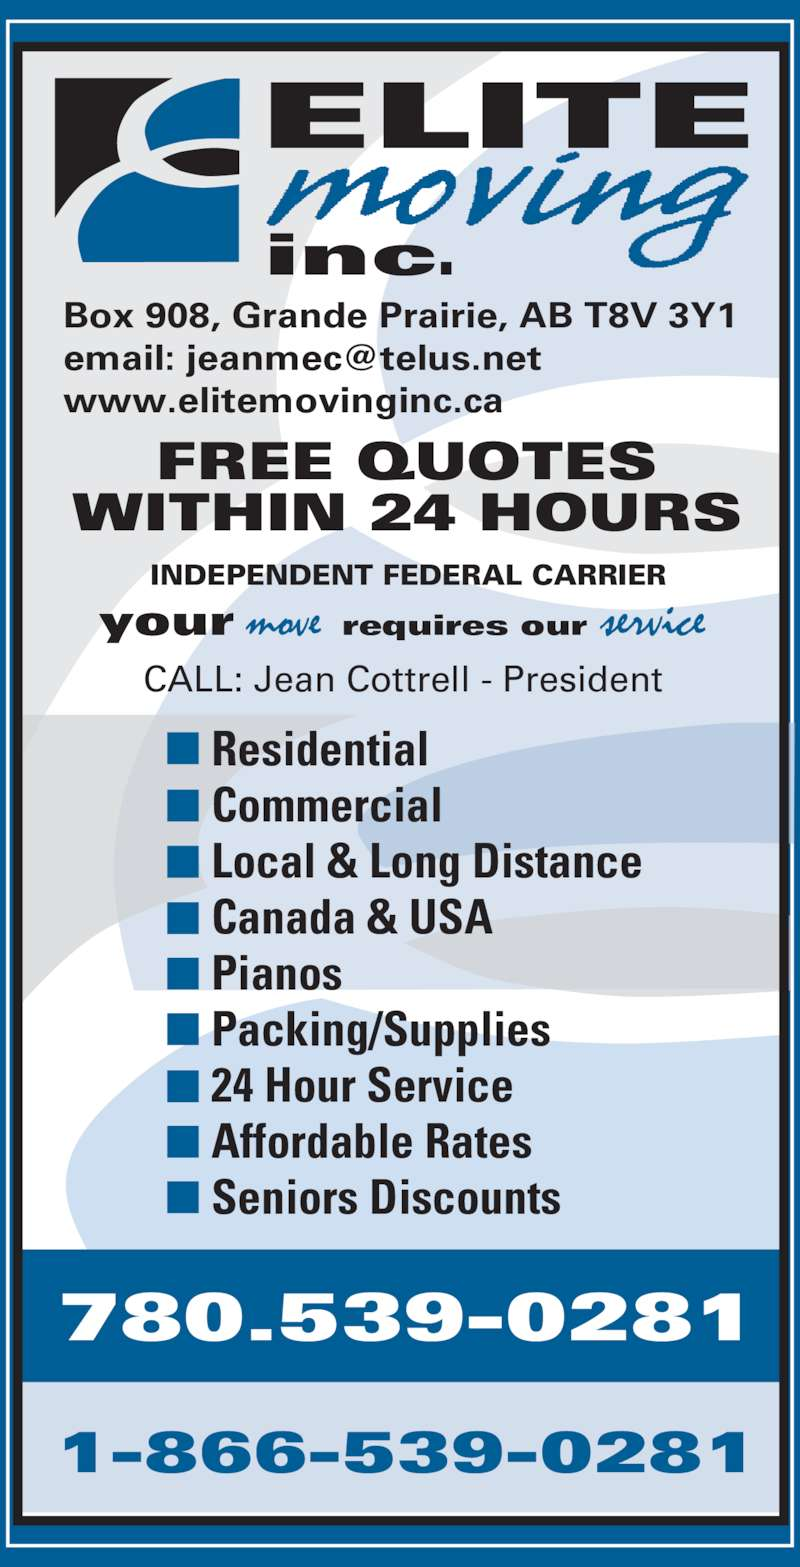 Elite Moving (780-539-0281) - Display Ad - inc. 780.539-0281 1-866-539-0281 Box 908, Grande Prairie, AB T8V 3Y1 www.elitemovinginc.ca CALL: Jean Cottrell - President INDEPENDENT FEDERAL CARRIER your  requires our  FREE QUOTES WITHIN 24 HOURS Residential Commercial Local & Long Distance Canada & USA Pianos Packing/Supplies 24 Hour Service Affordable Rates Seniors Discounts ELITE